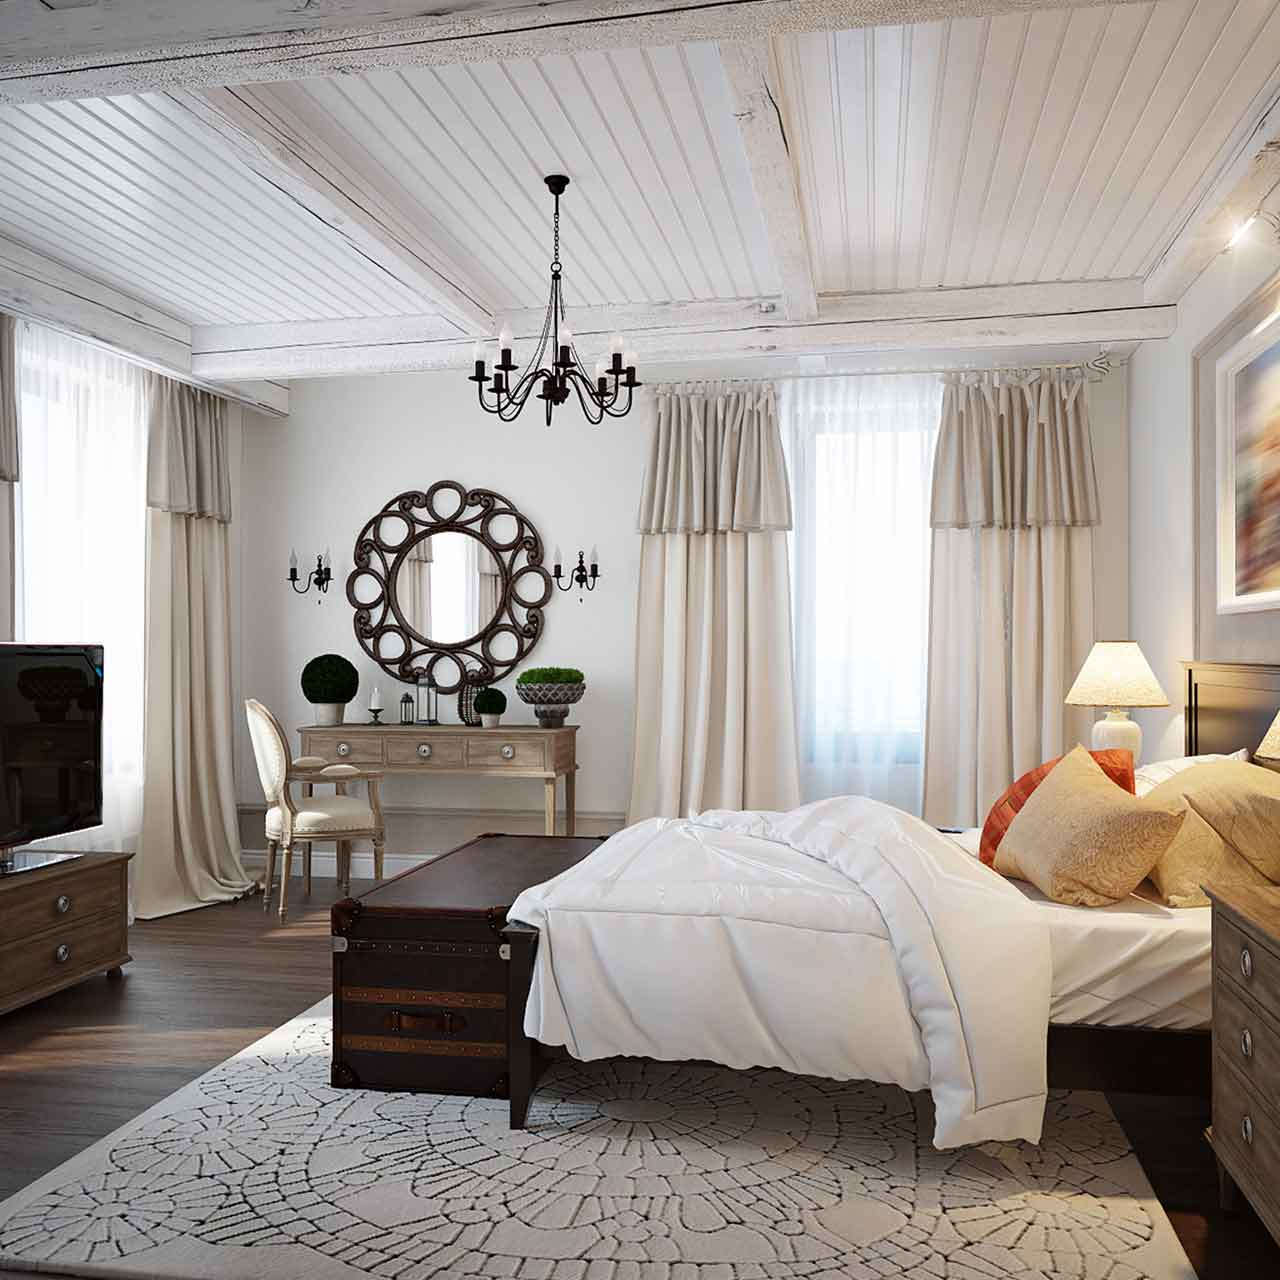 Mediterranean style bedroom interior design is a fusion of sophistication and elegance